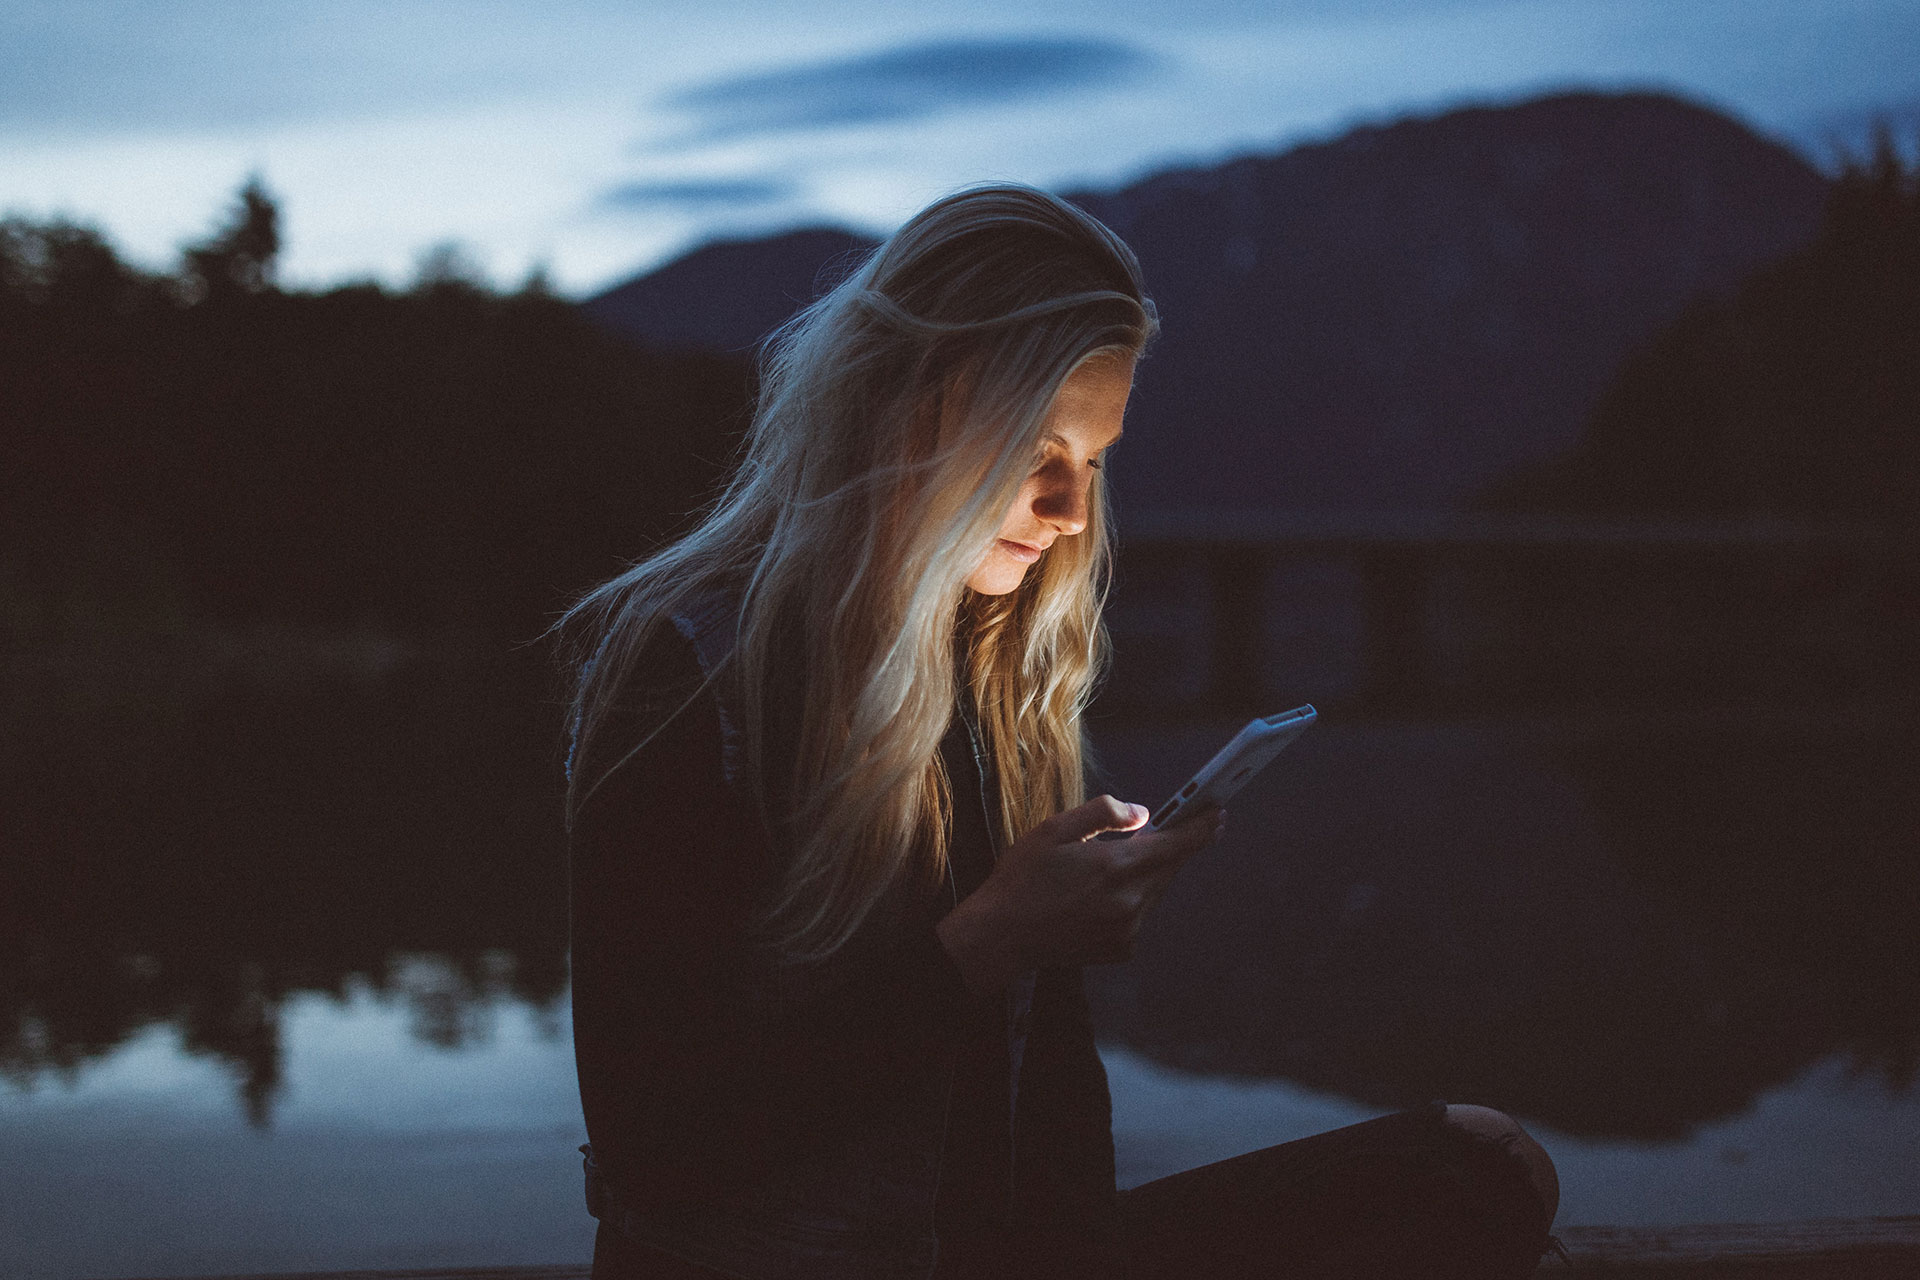 Female on phone by a lake at night